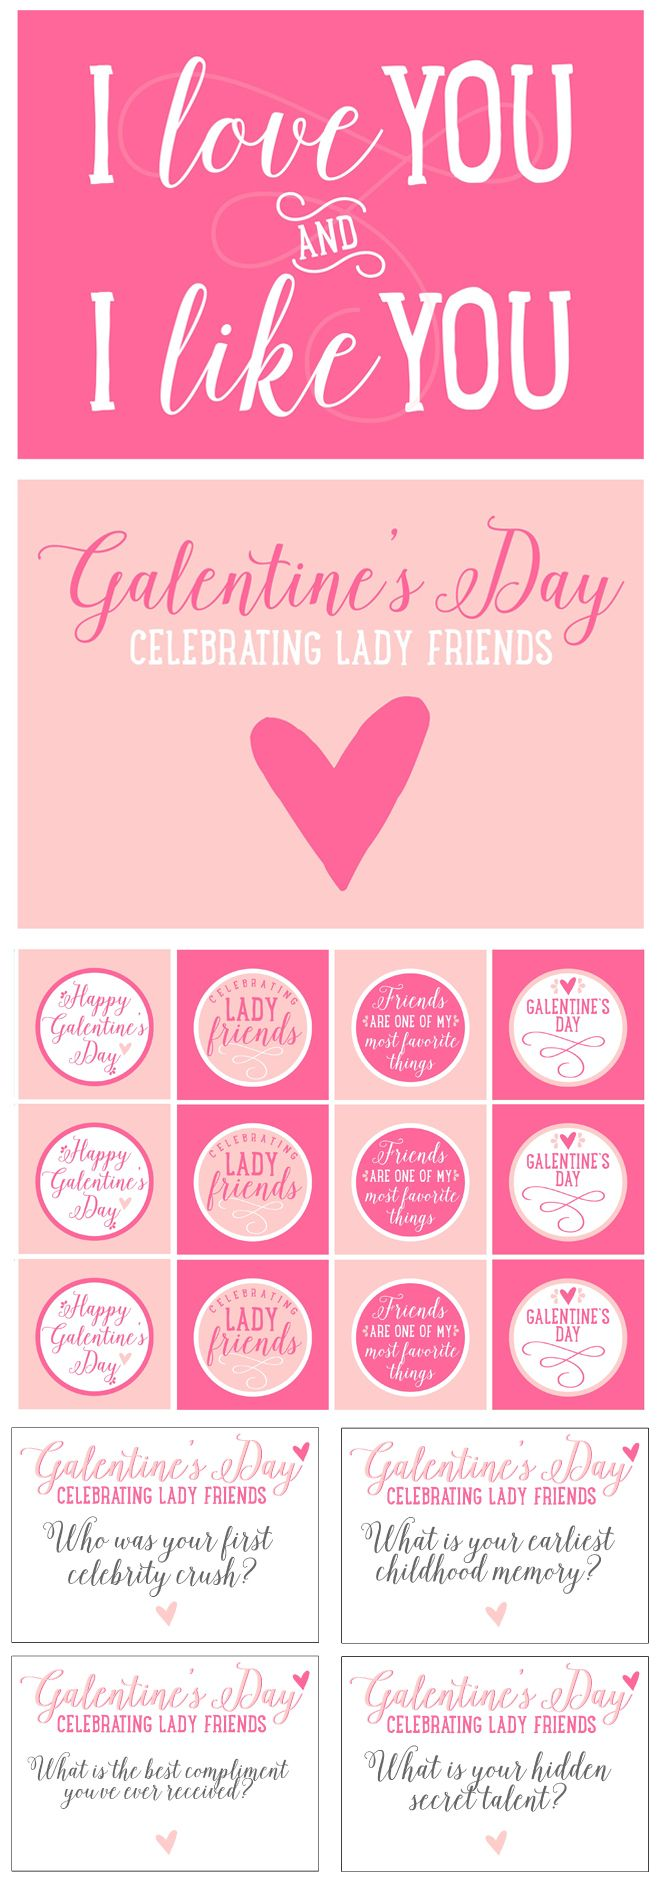 Free Galentine S Day Party Printables Pizzazzerie Happy Galentines Day Galentines Day Ideas Galentines